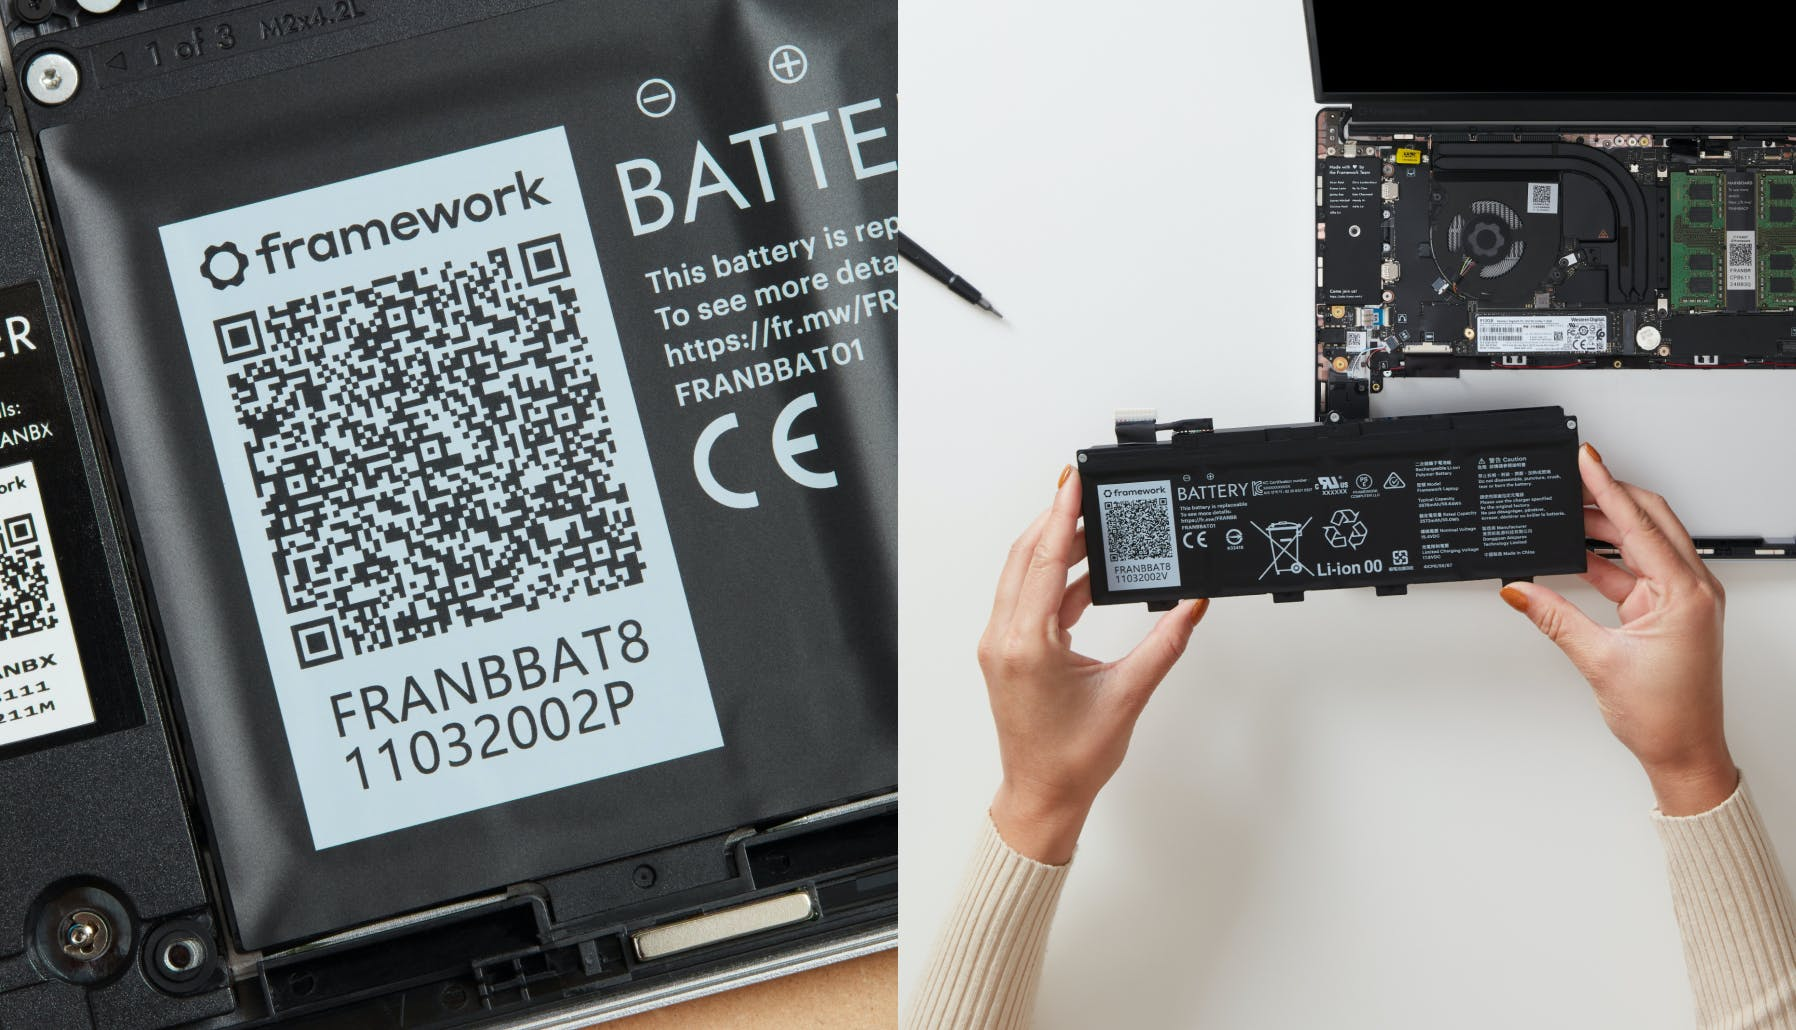 Split image. Left image shows a close-up of a QR code on the battery. Right image shows someone installing the battery into the Framework laptop.